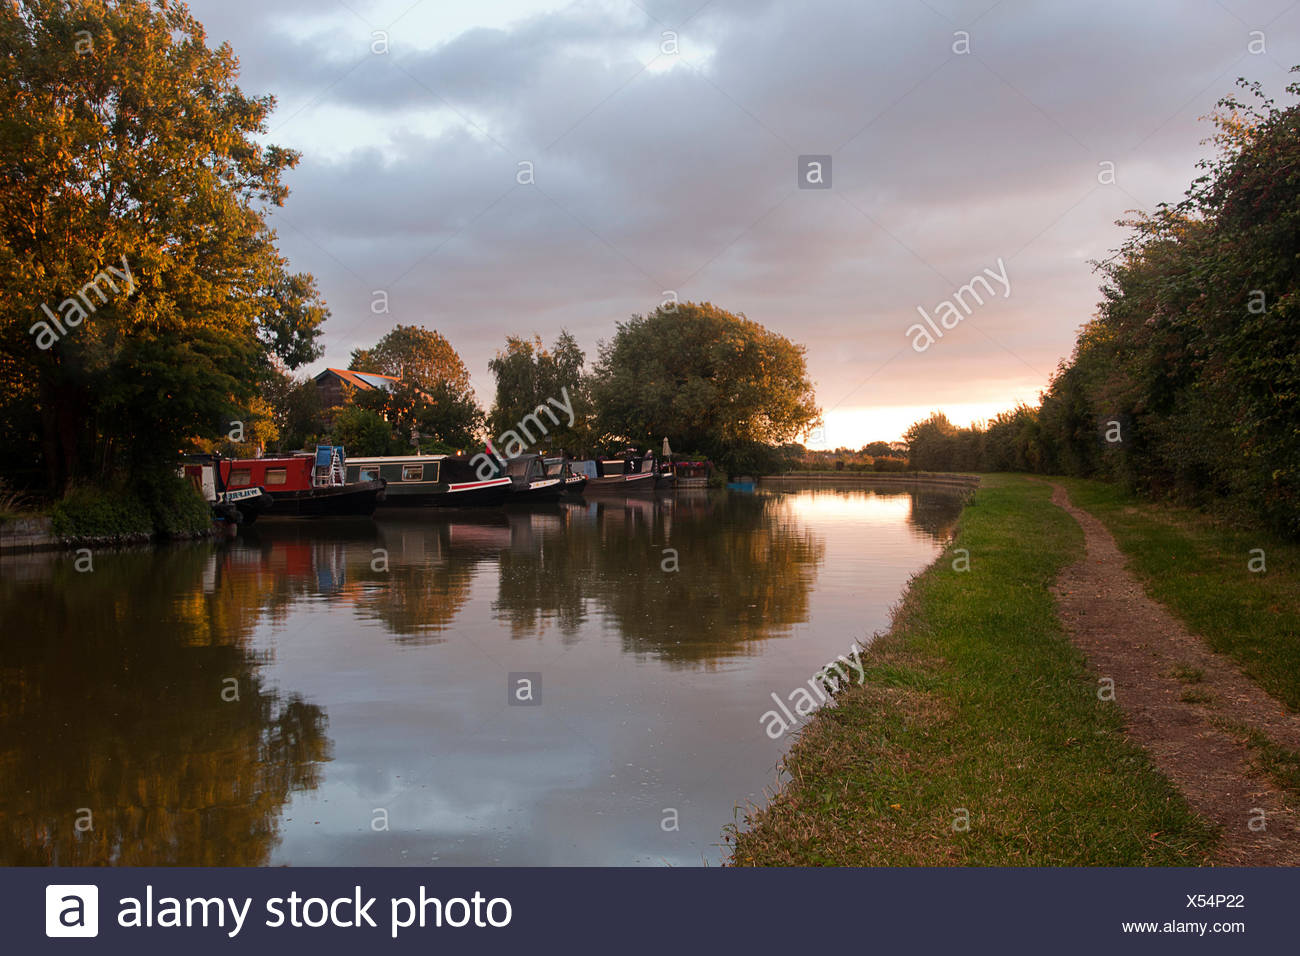 narrowboats and towpath along Cooks Wharf at sunset, Grand Union Canal Outer Aylesbury Ring, Cheddington, Buckinghamshire, England - Stock Image